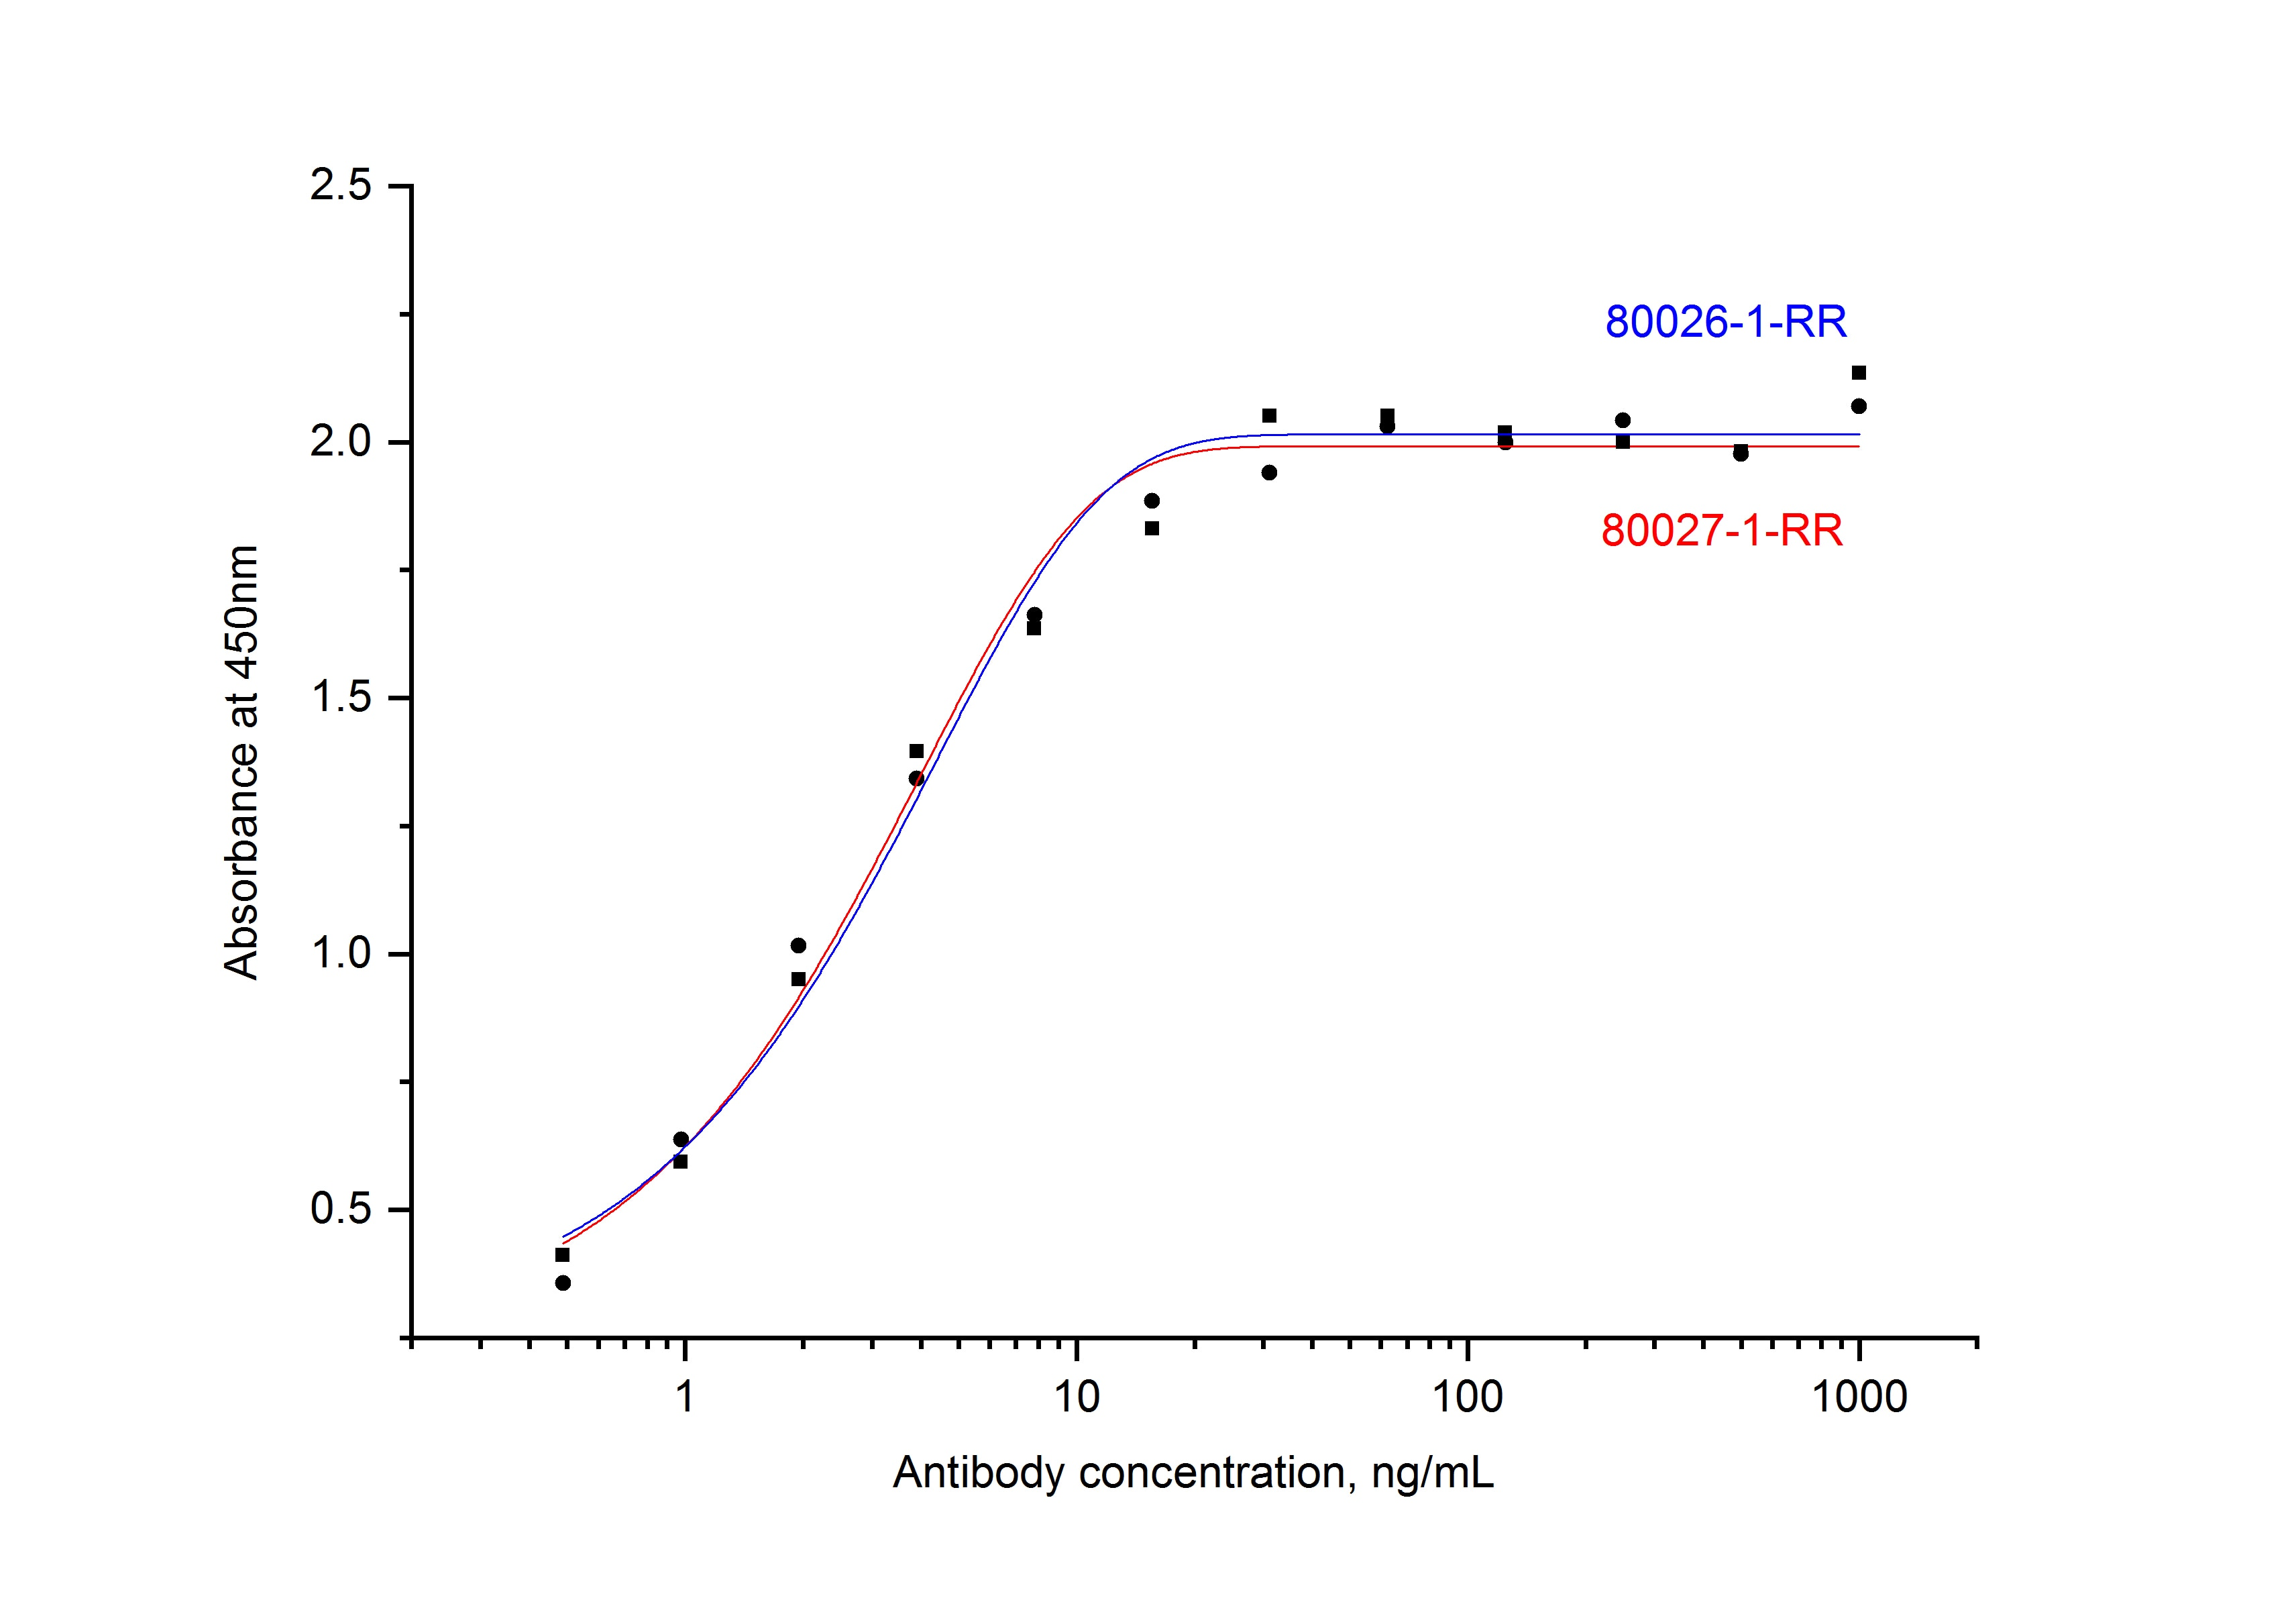 ELISA experiment of Recombinant protein using 80027-1-RR